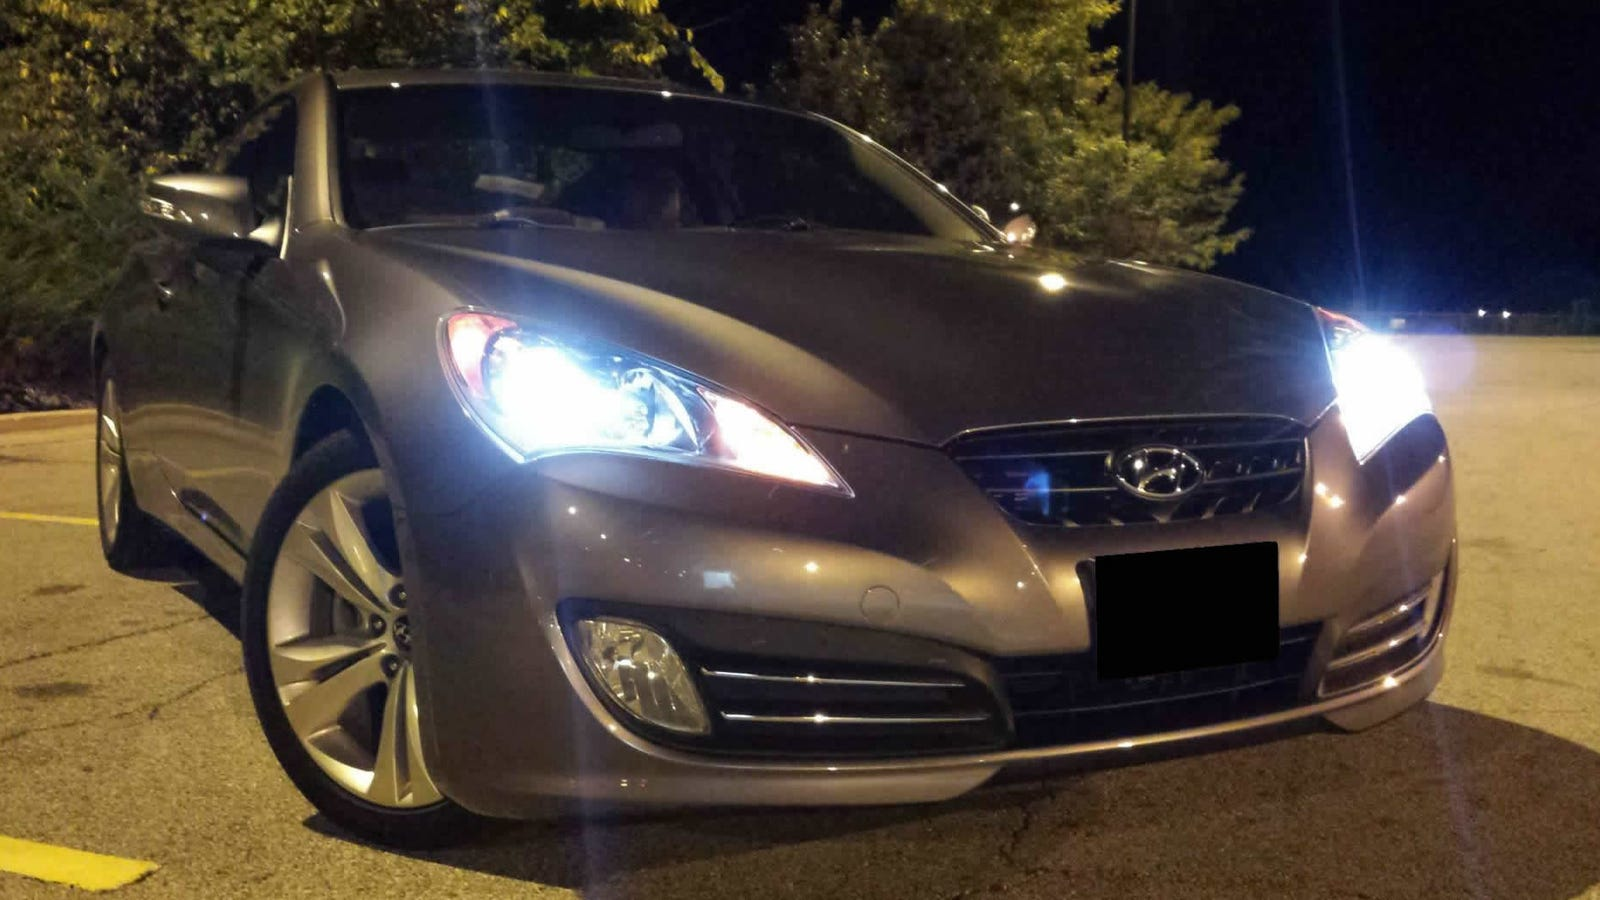 Merits of Tuning the Genesis Coupe?